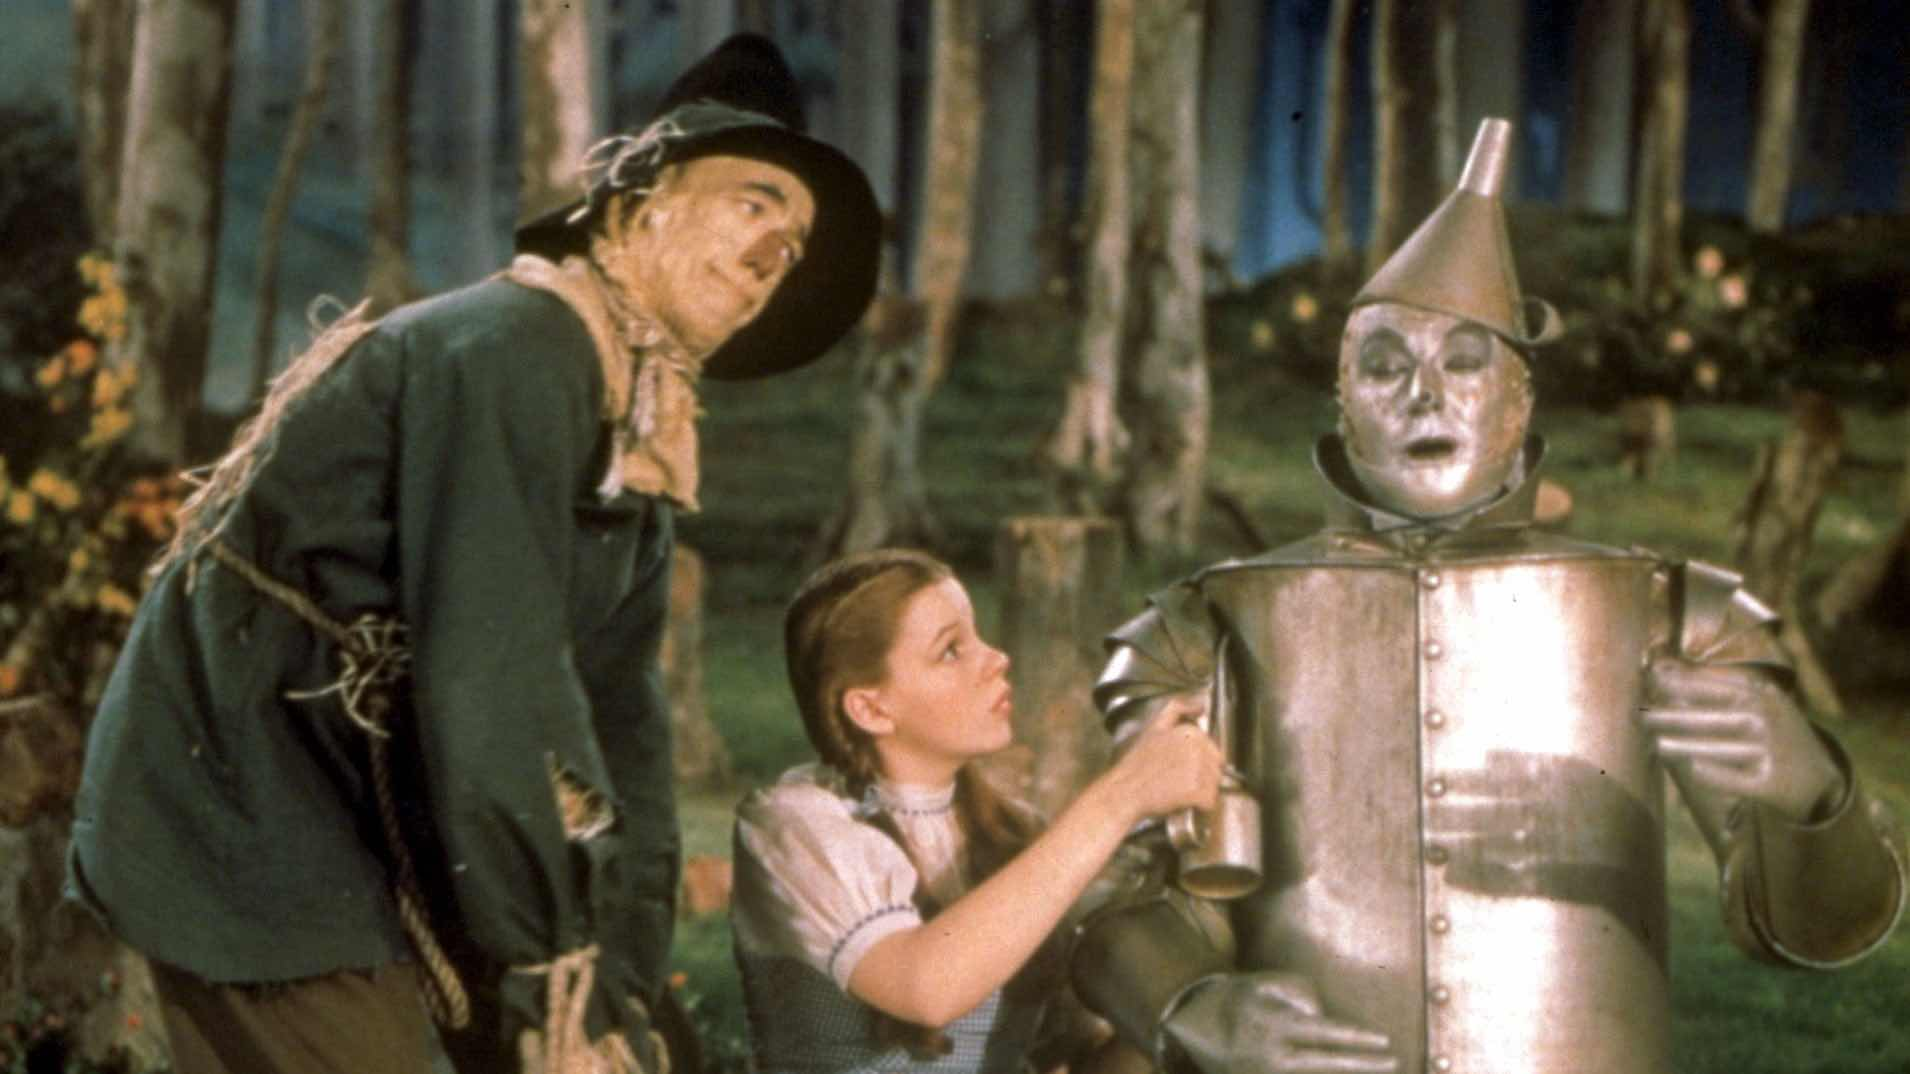 Wizard Of Oz 'most influential' movie ever made (Reports)